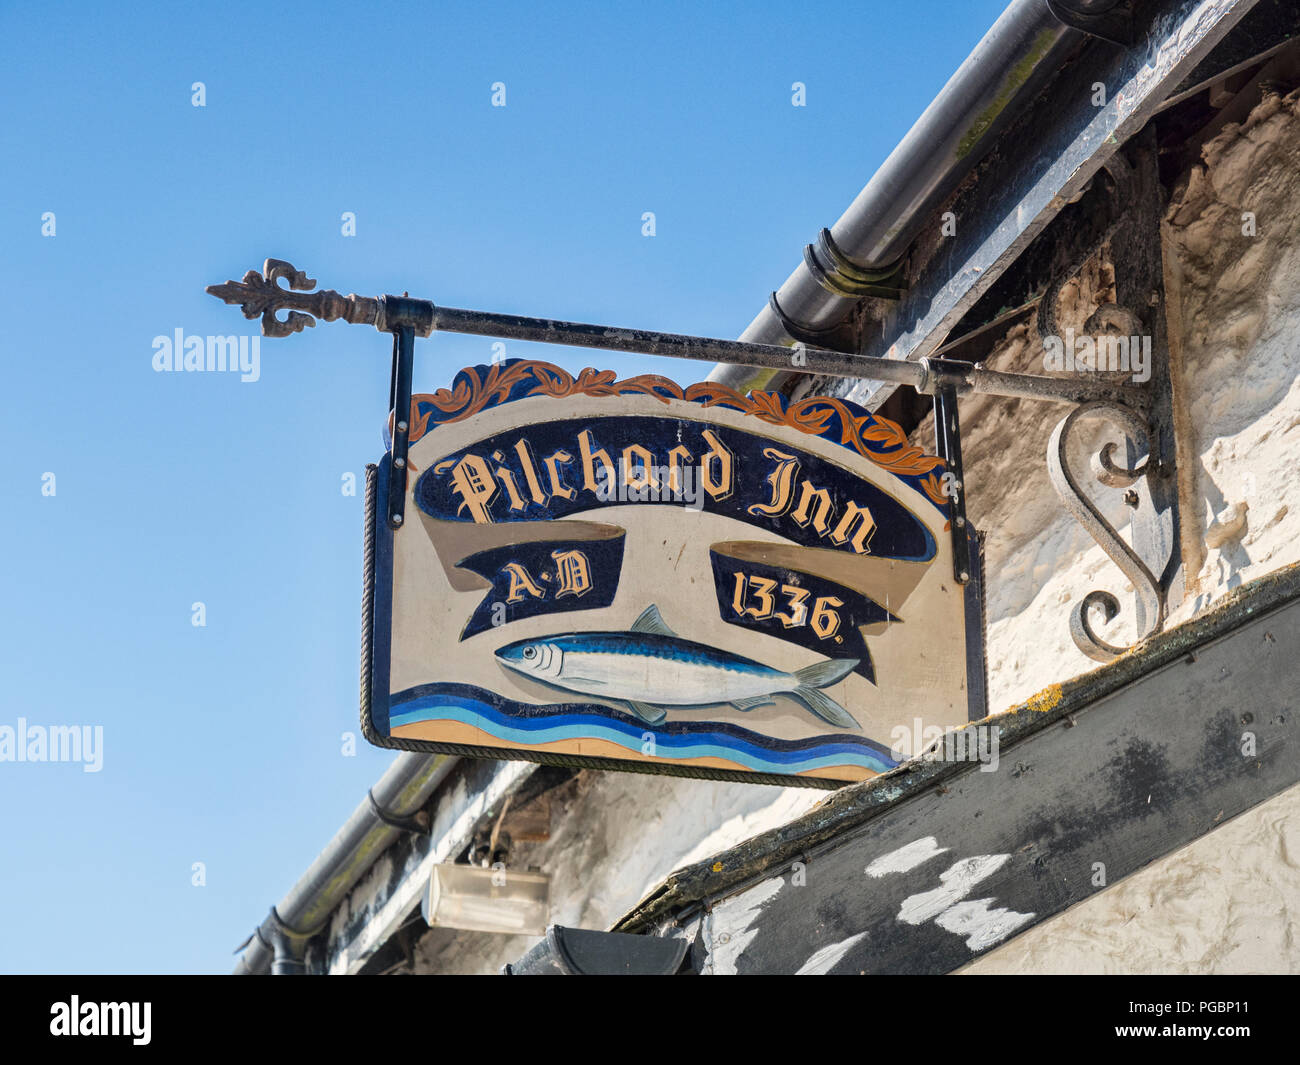 3 June 2018: Burgh Island, Bigbury on Sea, Devon, UK - The sign of the Pilchard Inn, established 1336. - Stock Image